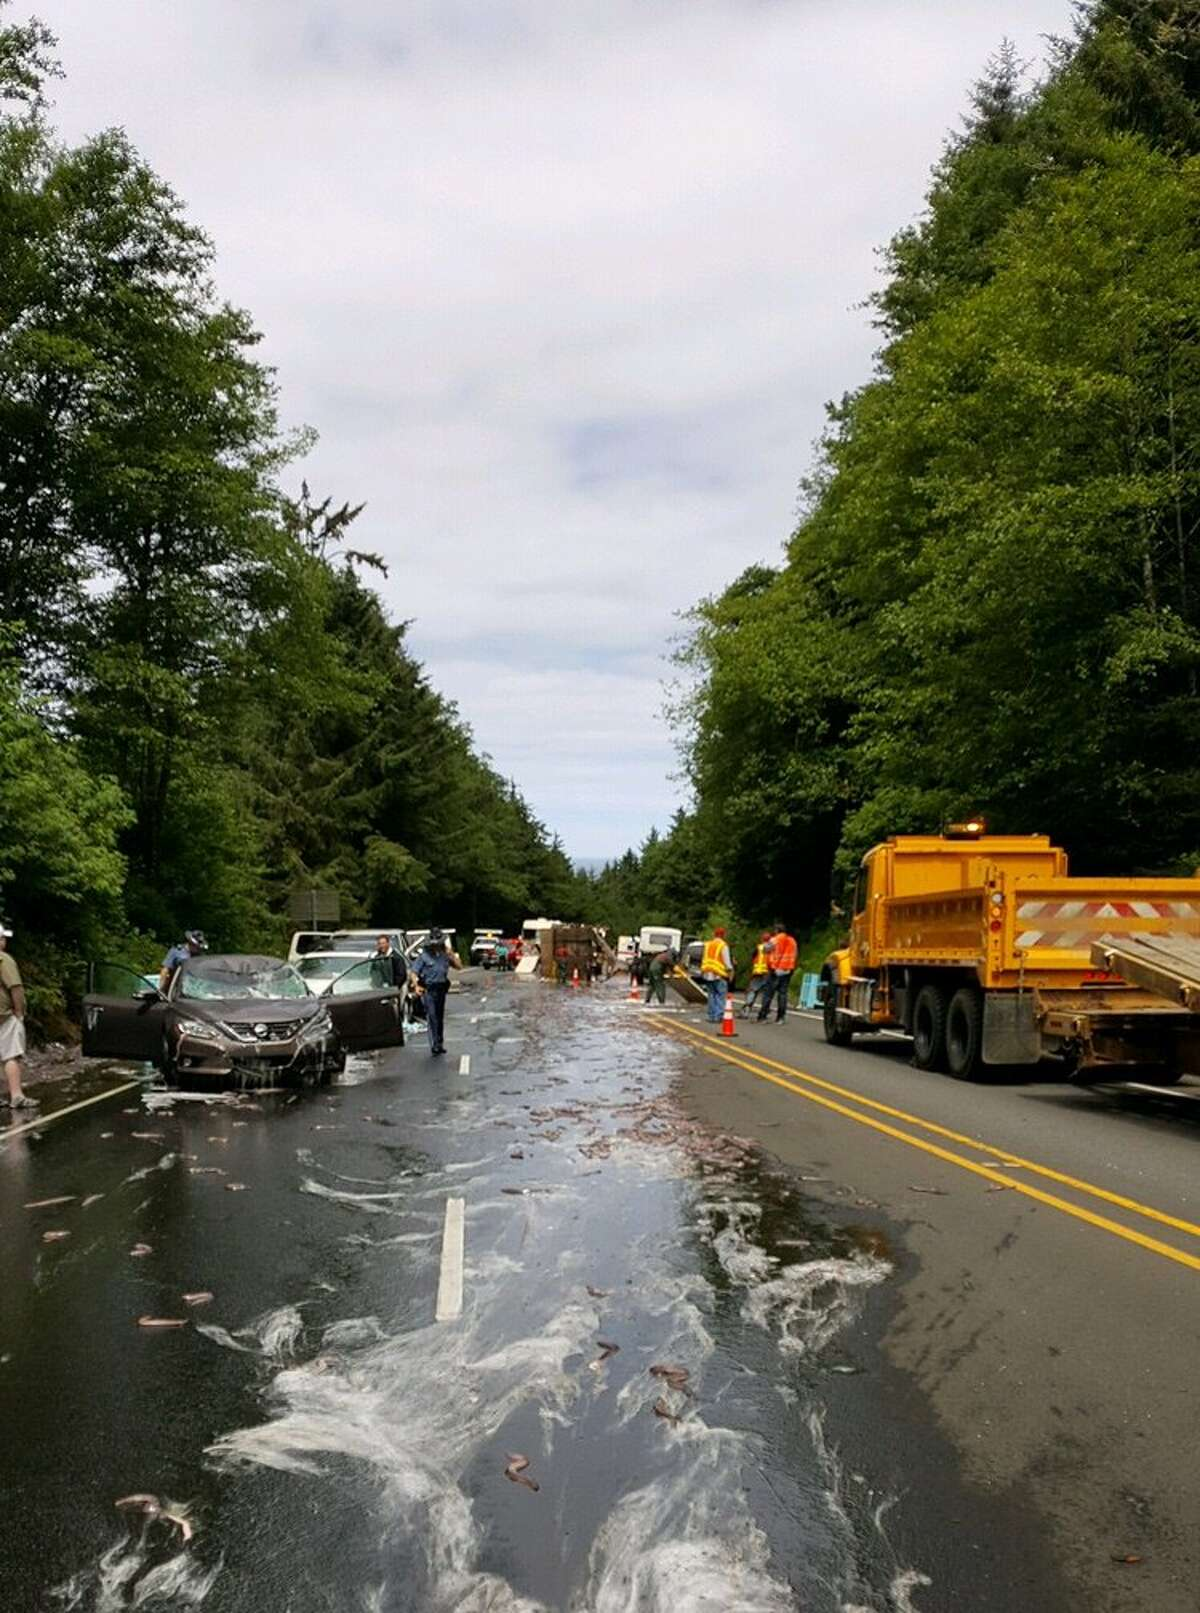 Oregon State Police released these photos showing the aftermath of an accident involving a truck carrying eels on Hwy. 101.